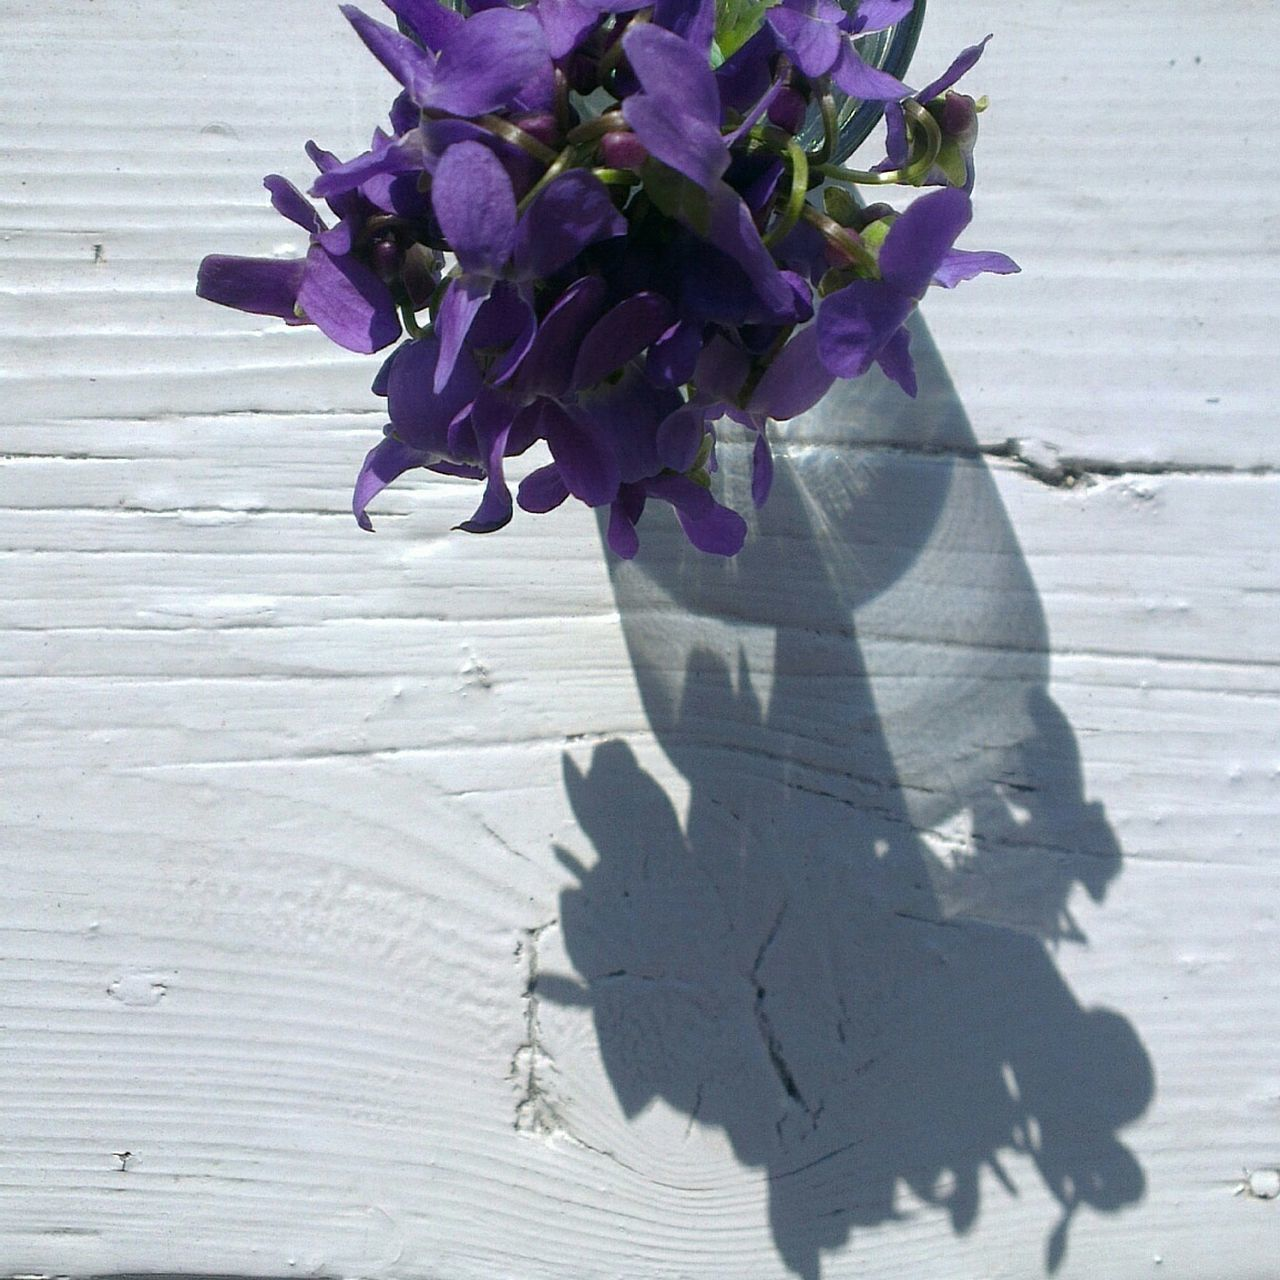 Violet Bouquet White Ledge Purple Flower Light&shadow Spring Mobile Photography